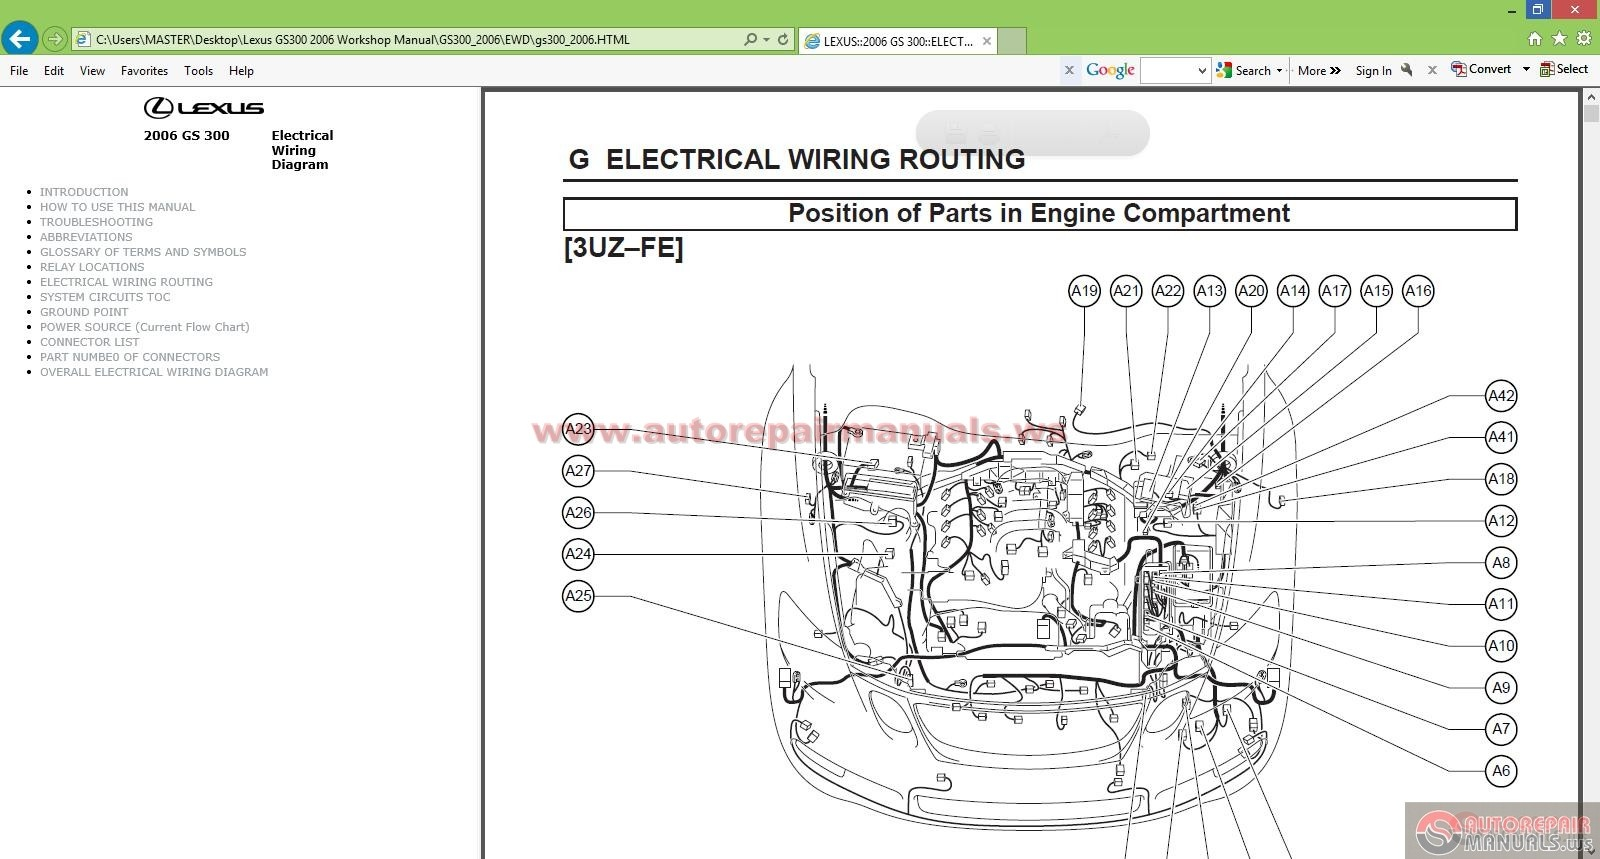 Lexus Gs300 2006 Workshop Manual